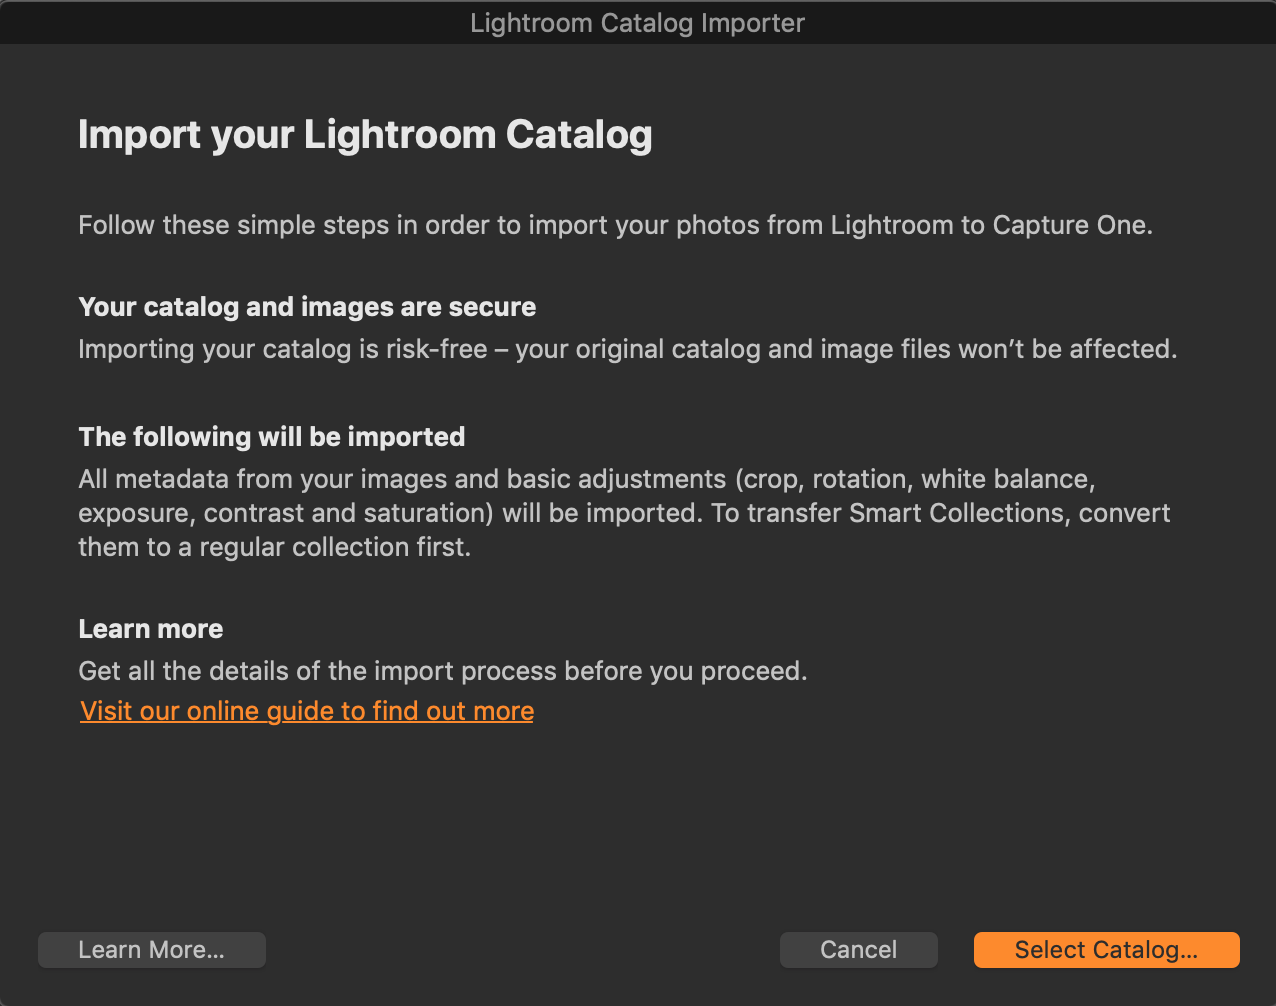 lightroom importer, capture one 20.1